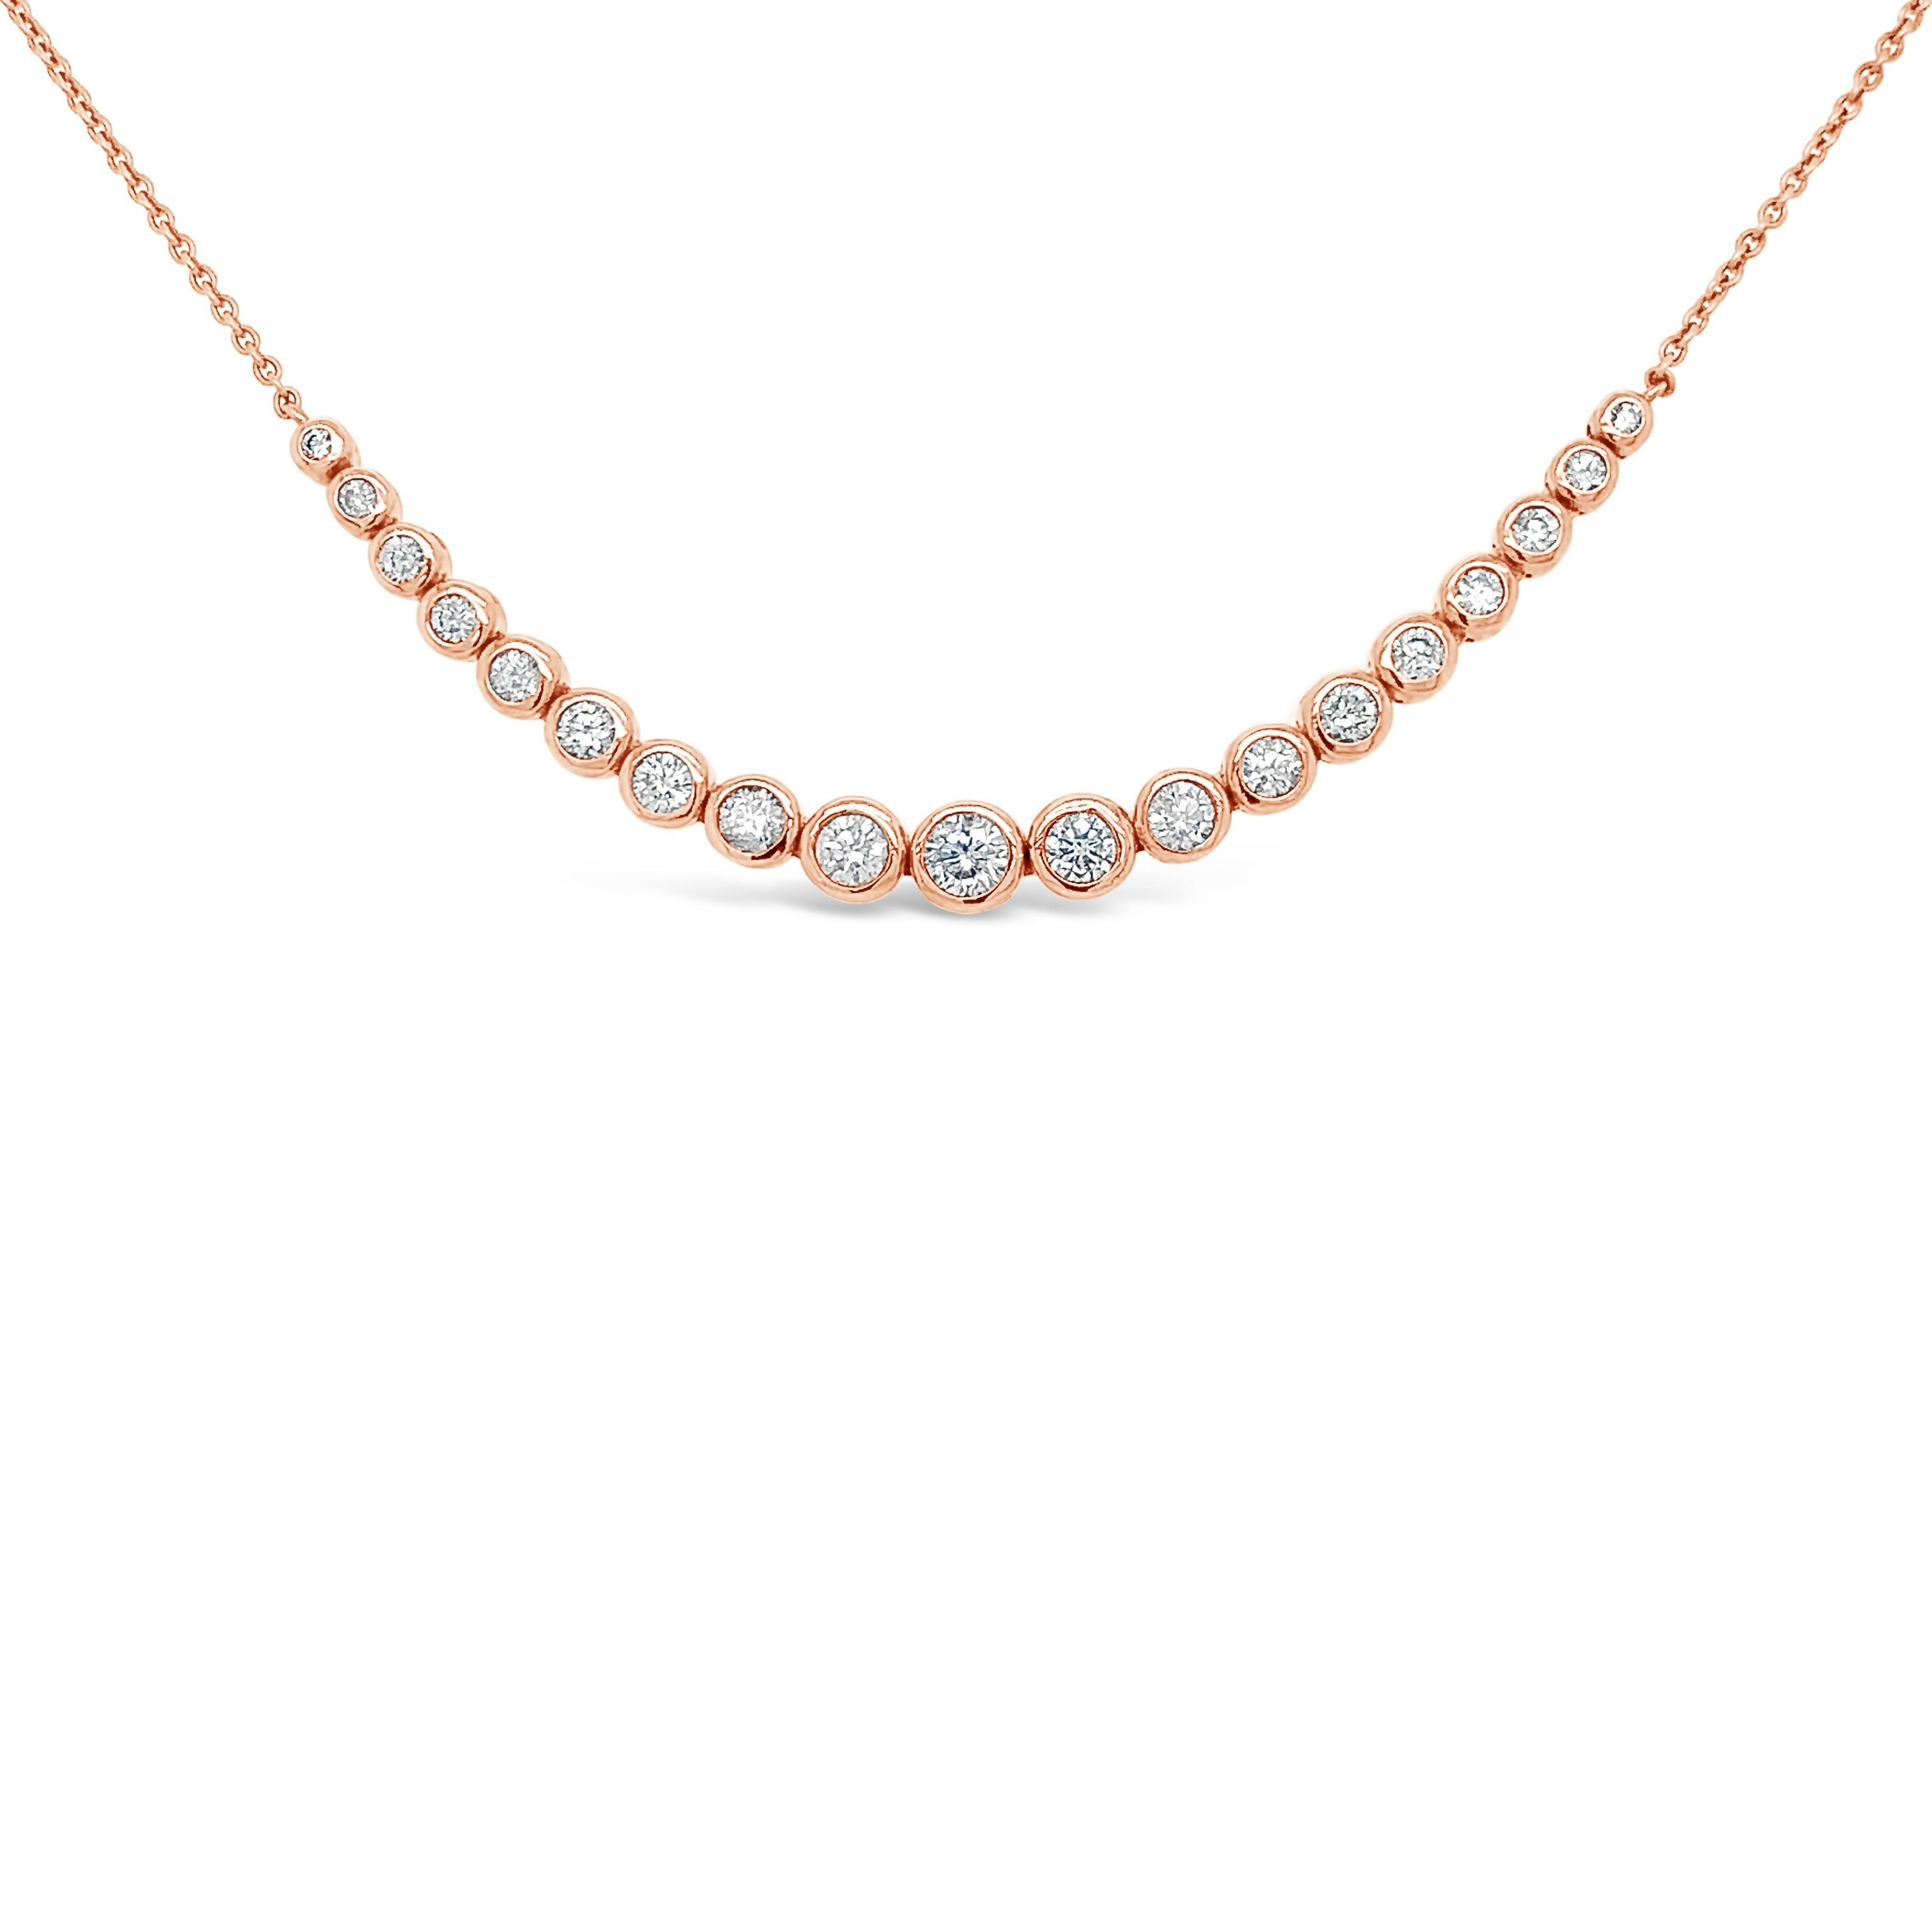 1.00 Carat Diamond Fashion Necklace in 14K Rose Gold - 16""